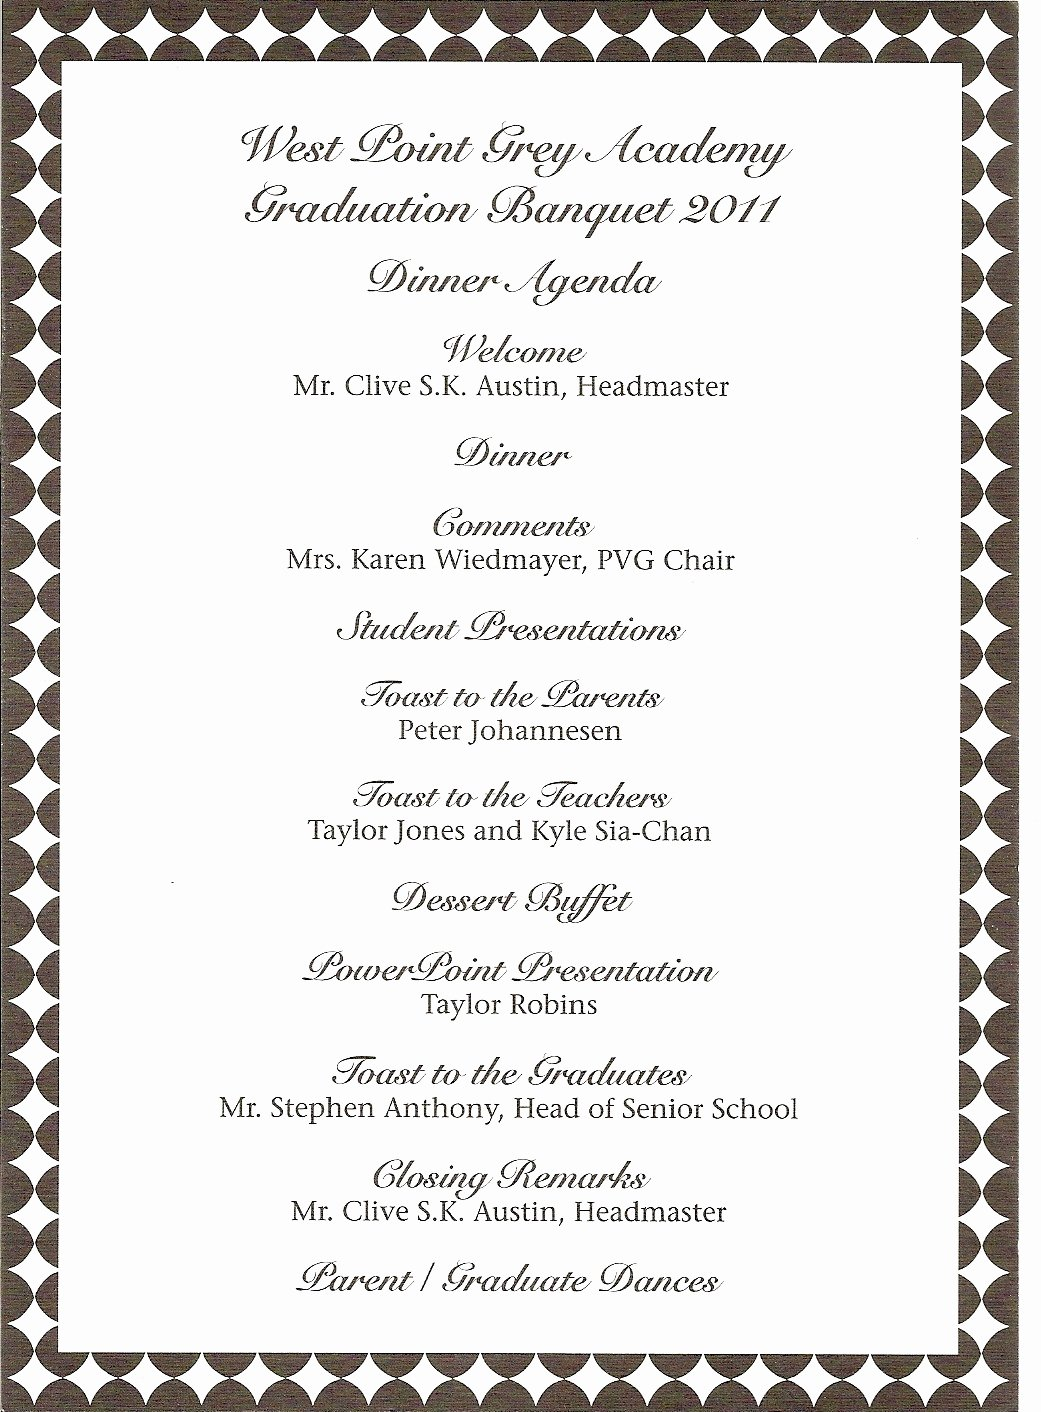 Graduation Ceremony Agenda Beautiful Donna S Report Wpga Graduation Banquet Teddy